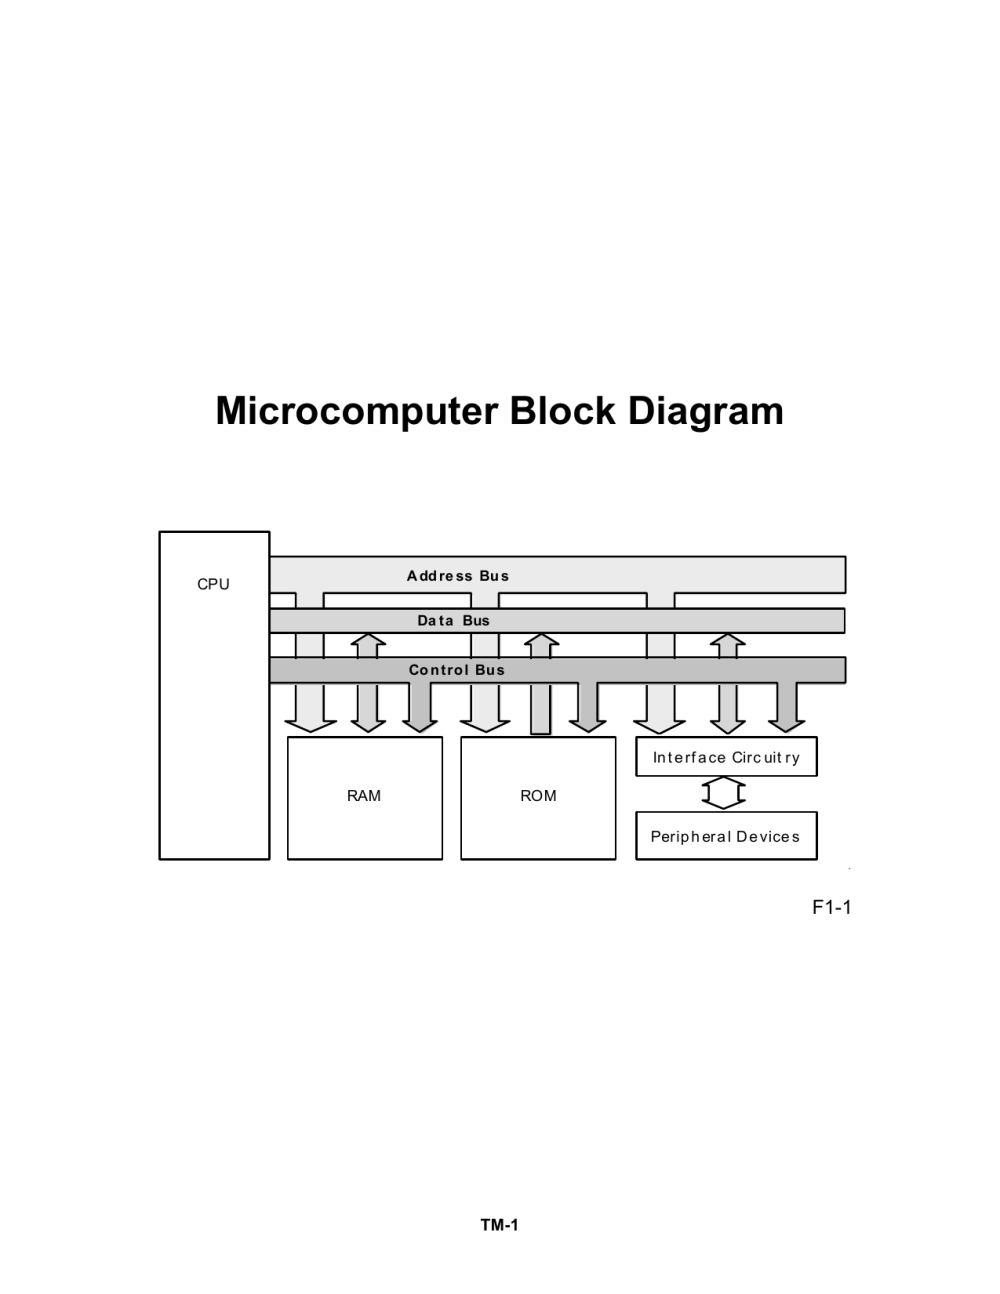 medium resolution of microcomputer block diagram a dd re ss bu s cpu da ta bus co n tro l bu s in t e rf a ce circ uit r y ram rom perip